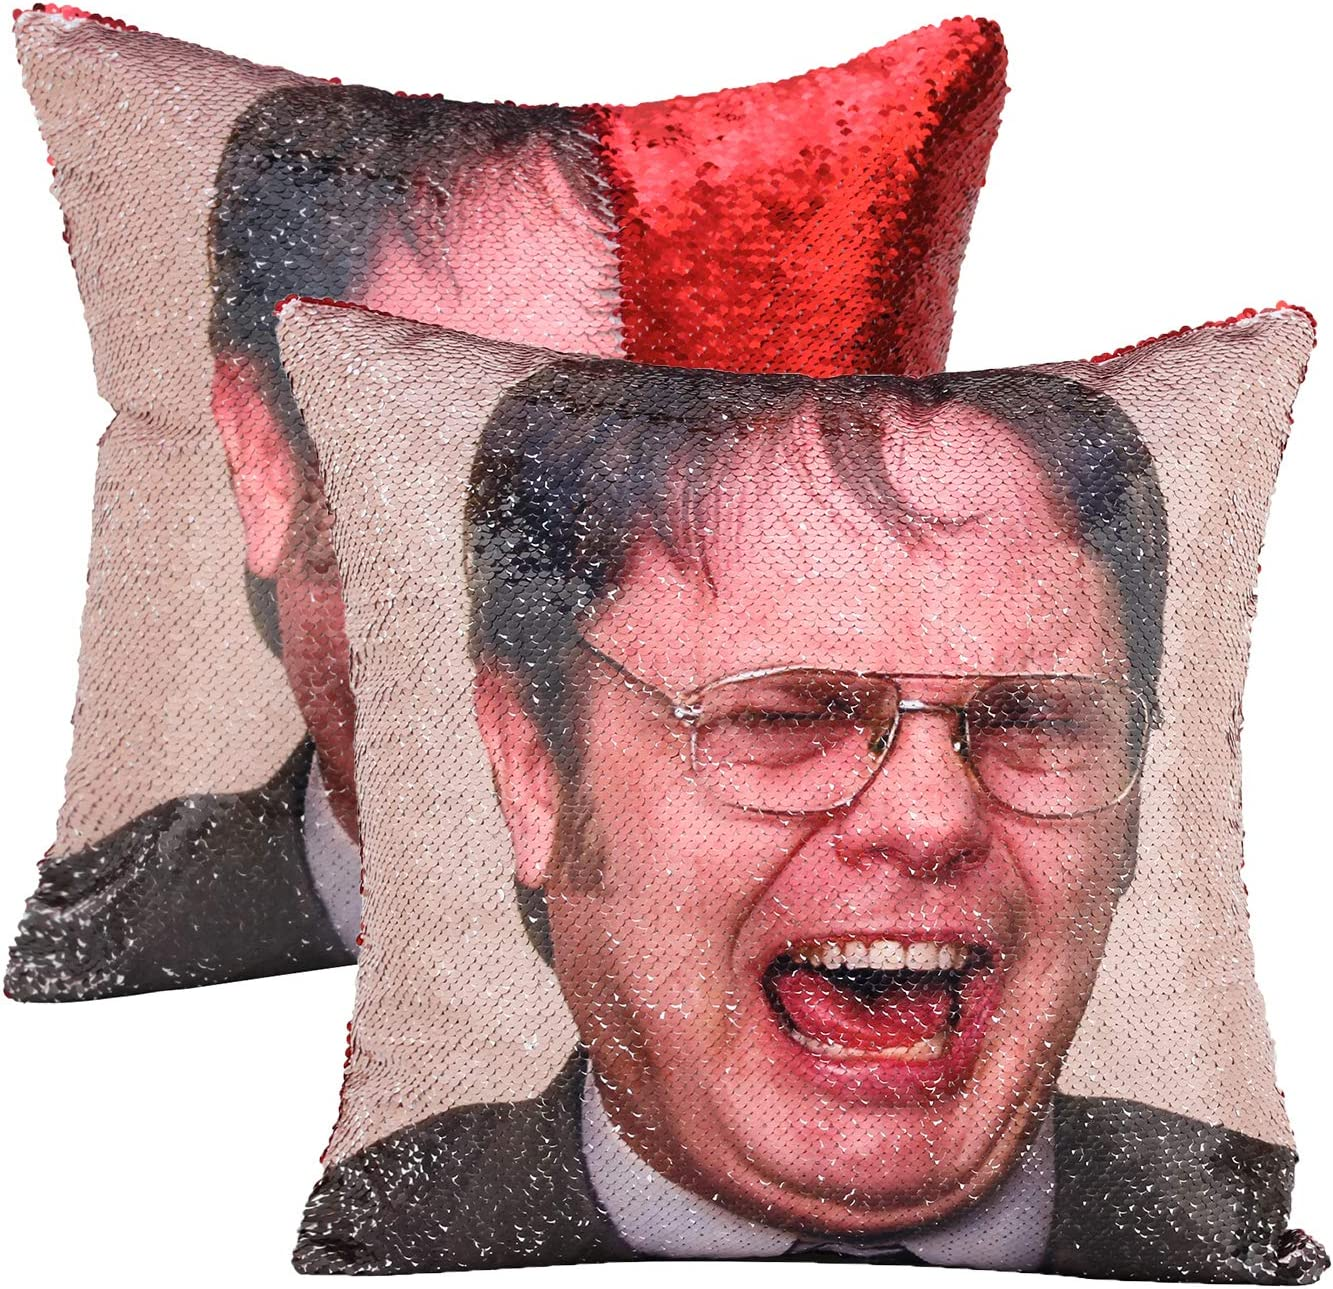 cygnus The Office Dwight Schrute Sequin Pillow Cover Funny Gag Gifts Magic Reversible Home Decorative Cushion Cover 16x16,Red